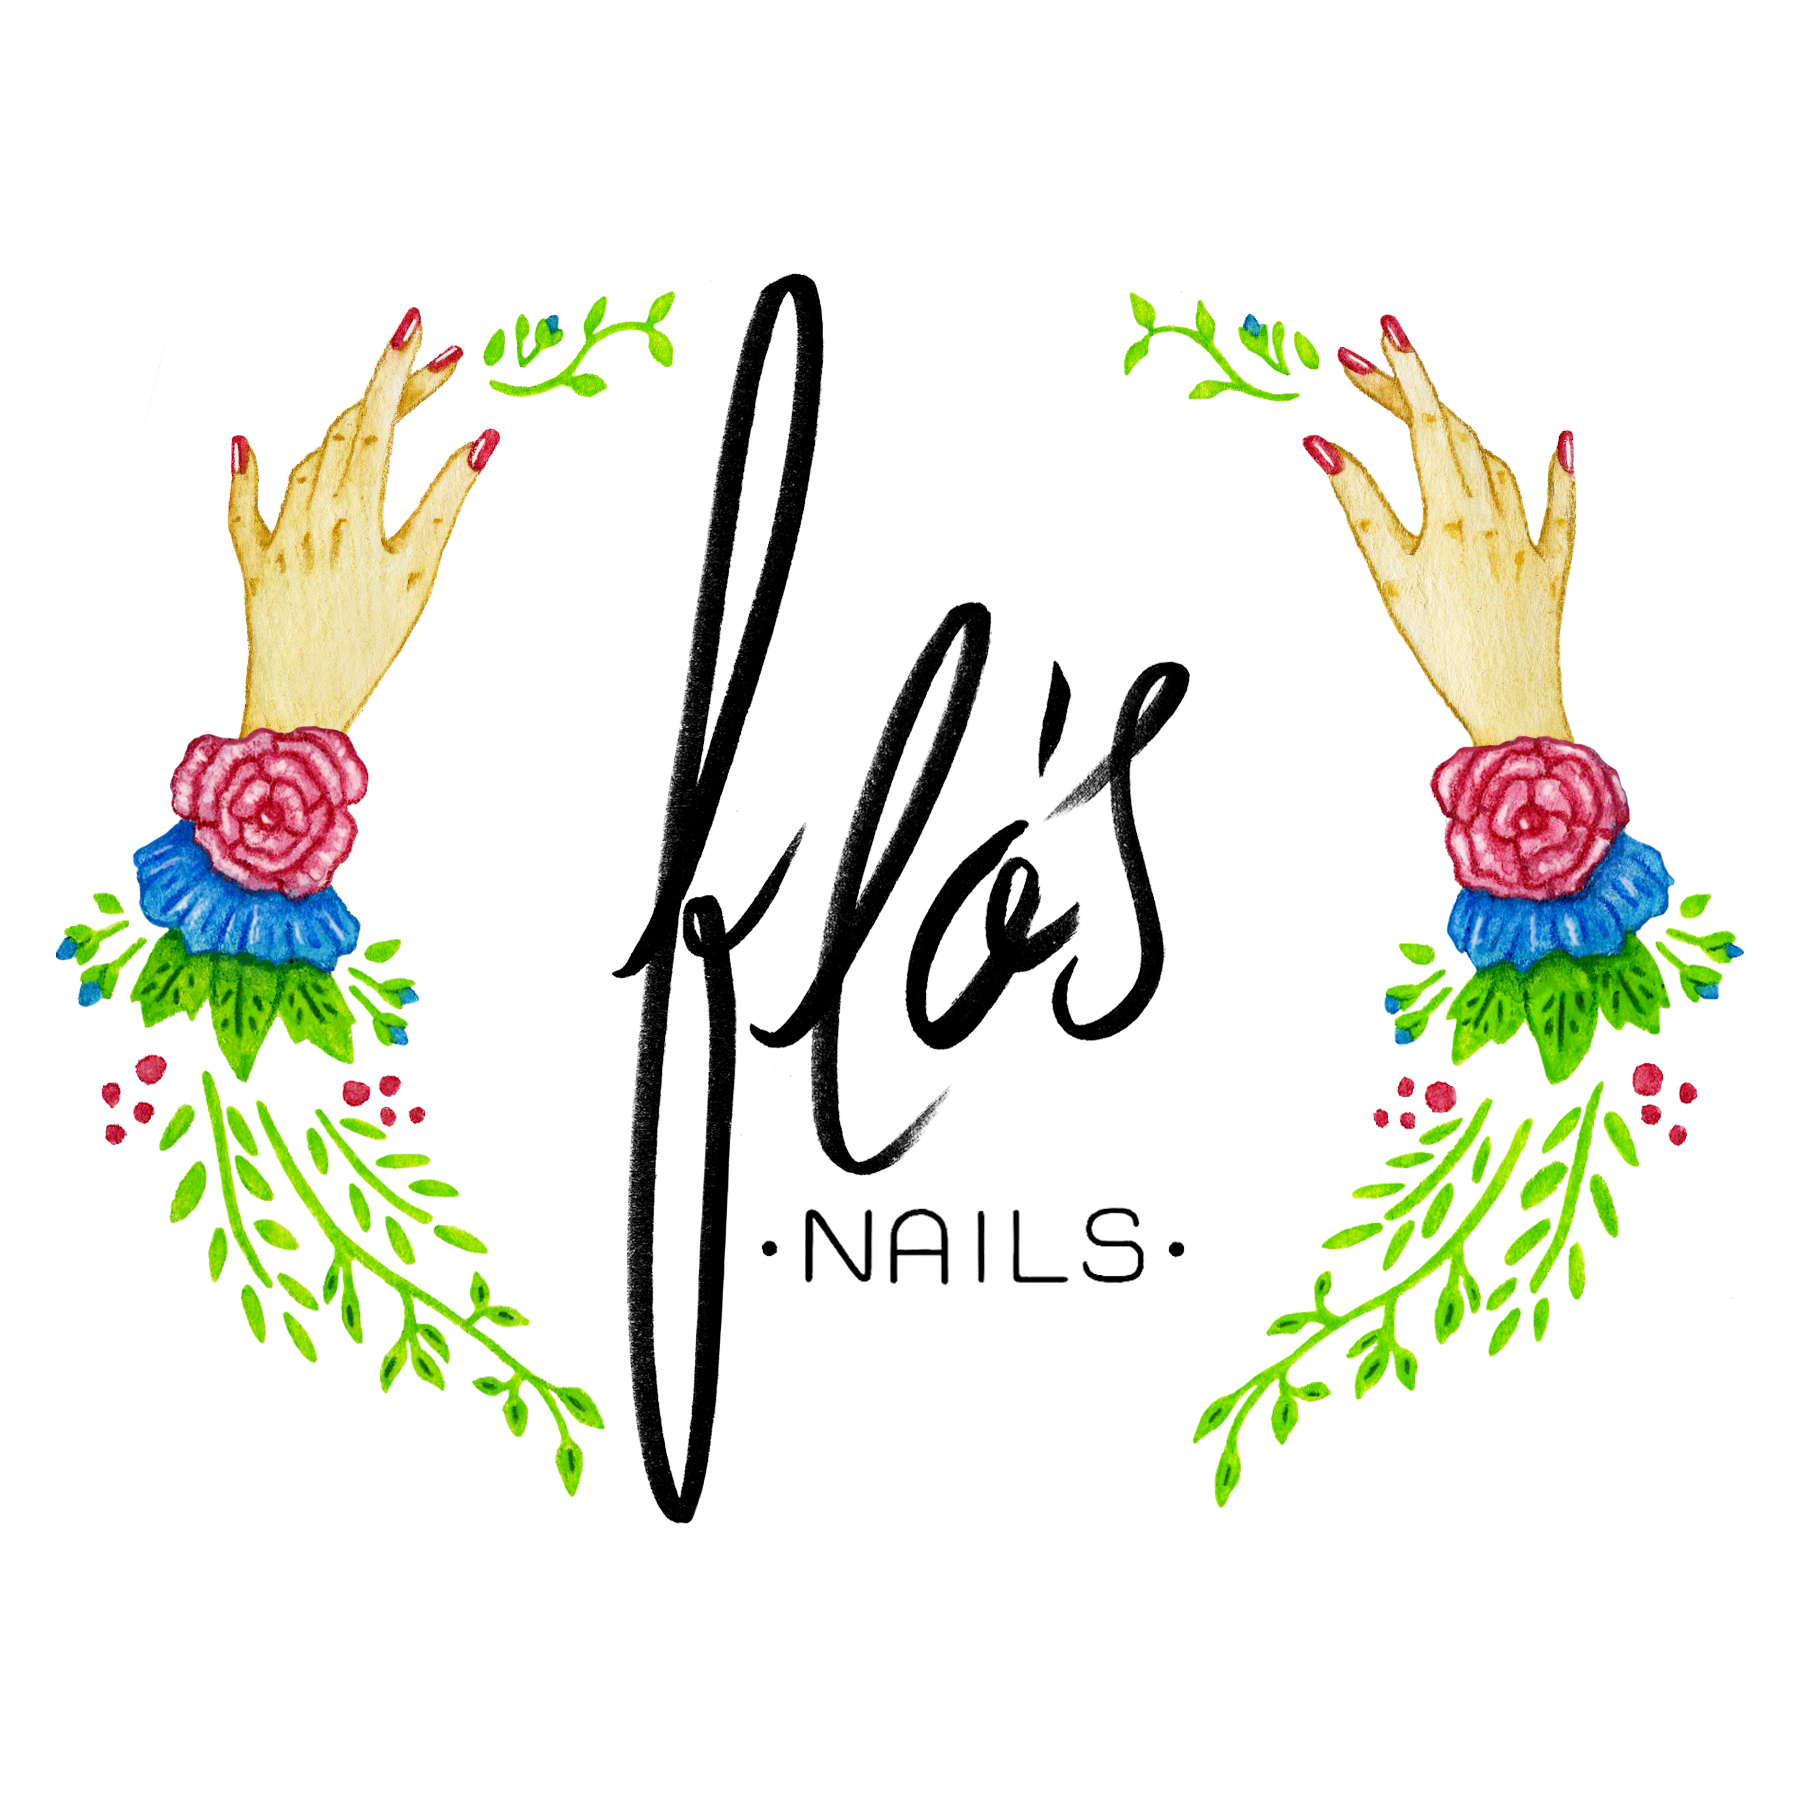 FLO'S NAILS - BRANDING | FREELANCEFlo's Nails is a boutique nail salon that was looking for a clean, floral mantling with a legible script type treatment. The type and border were both hand-drawn with both pen and watercolor border options from which to choose.